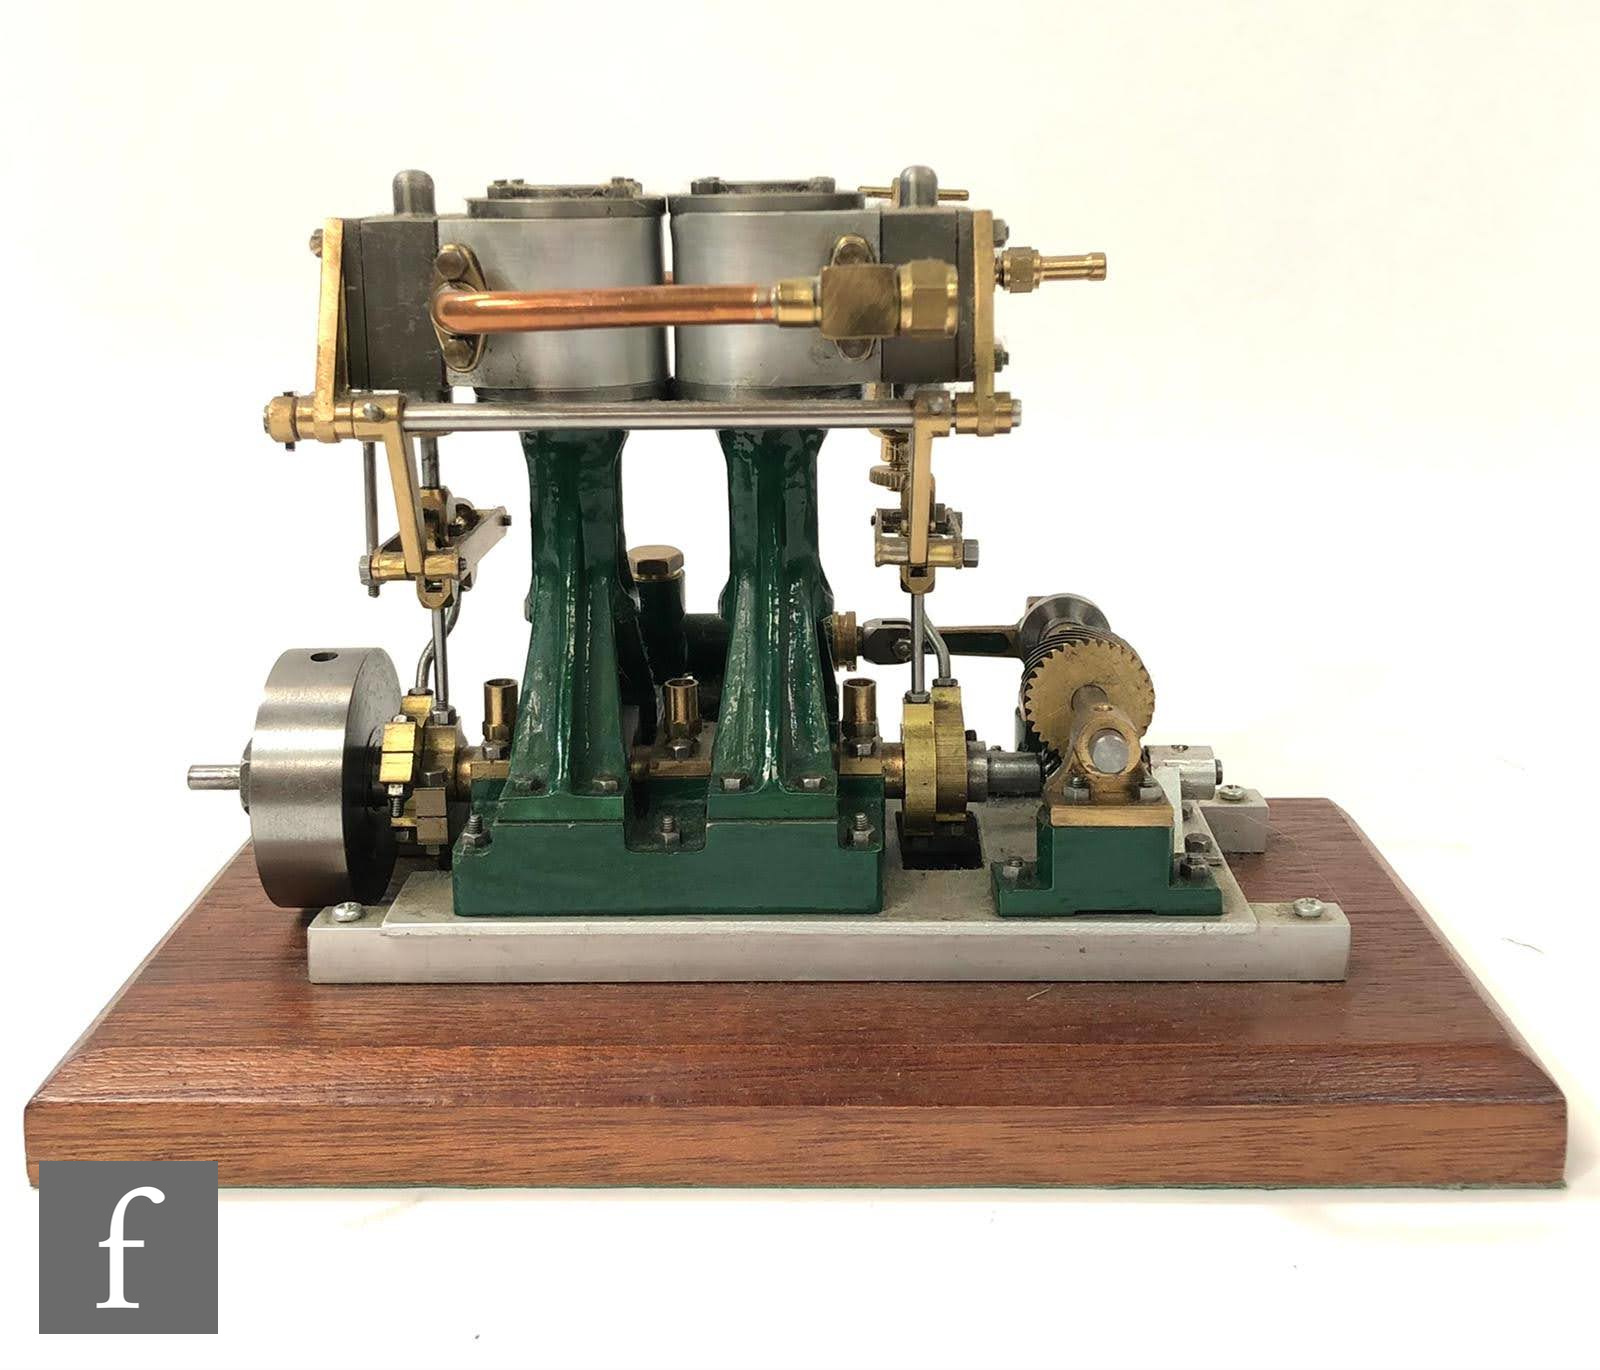 A Stuart twin cylinder marine engine with bevel gear drive and vertical oscillating pistons, painted